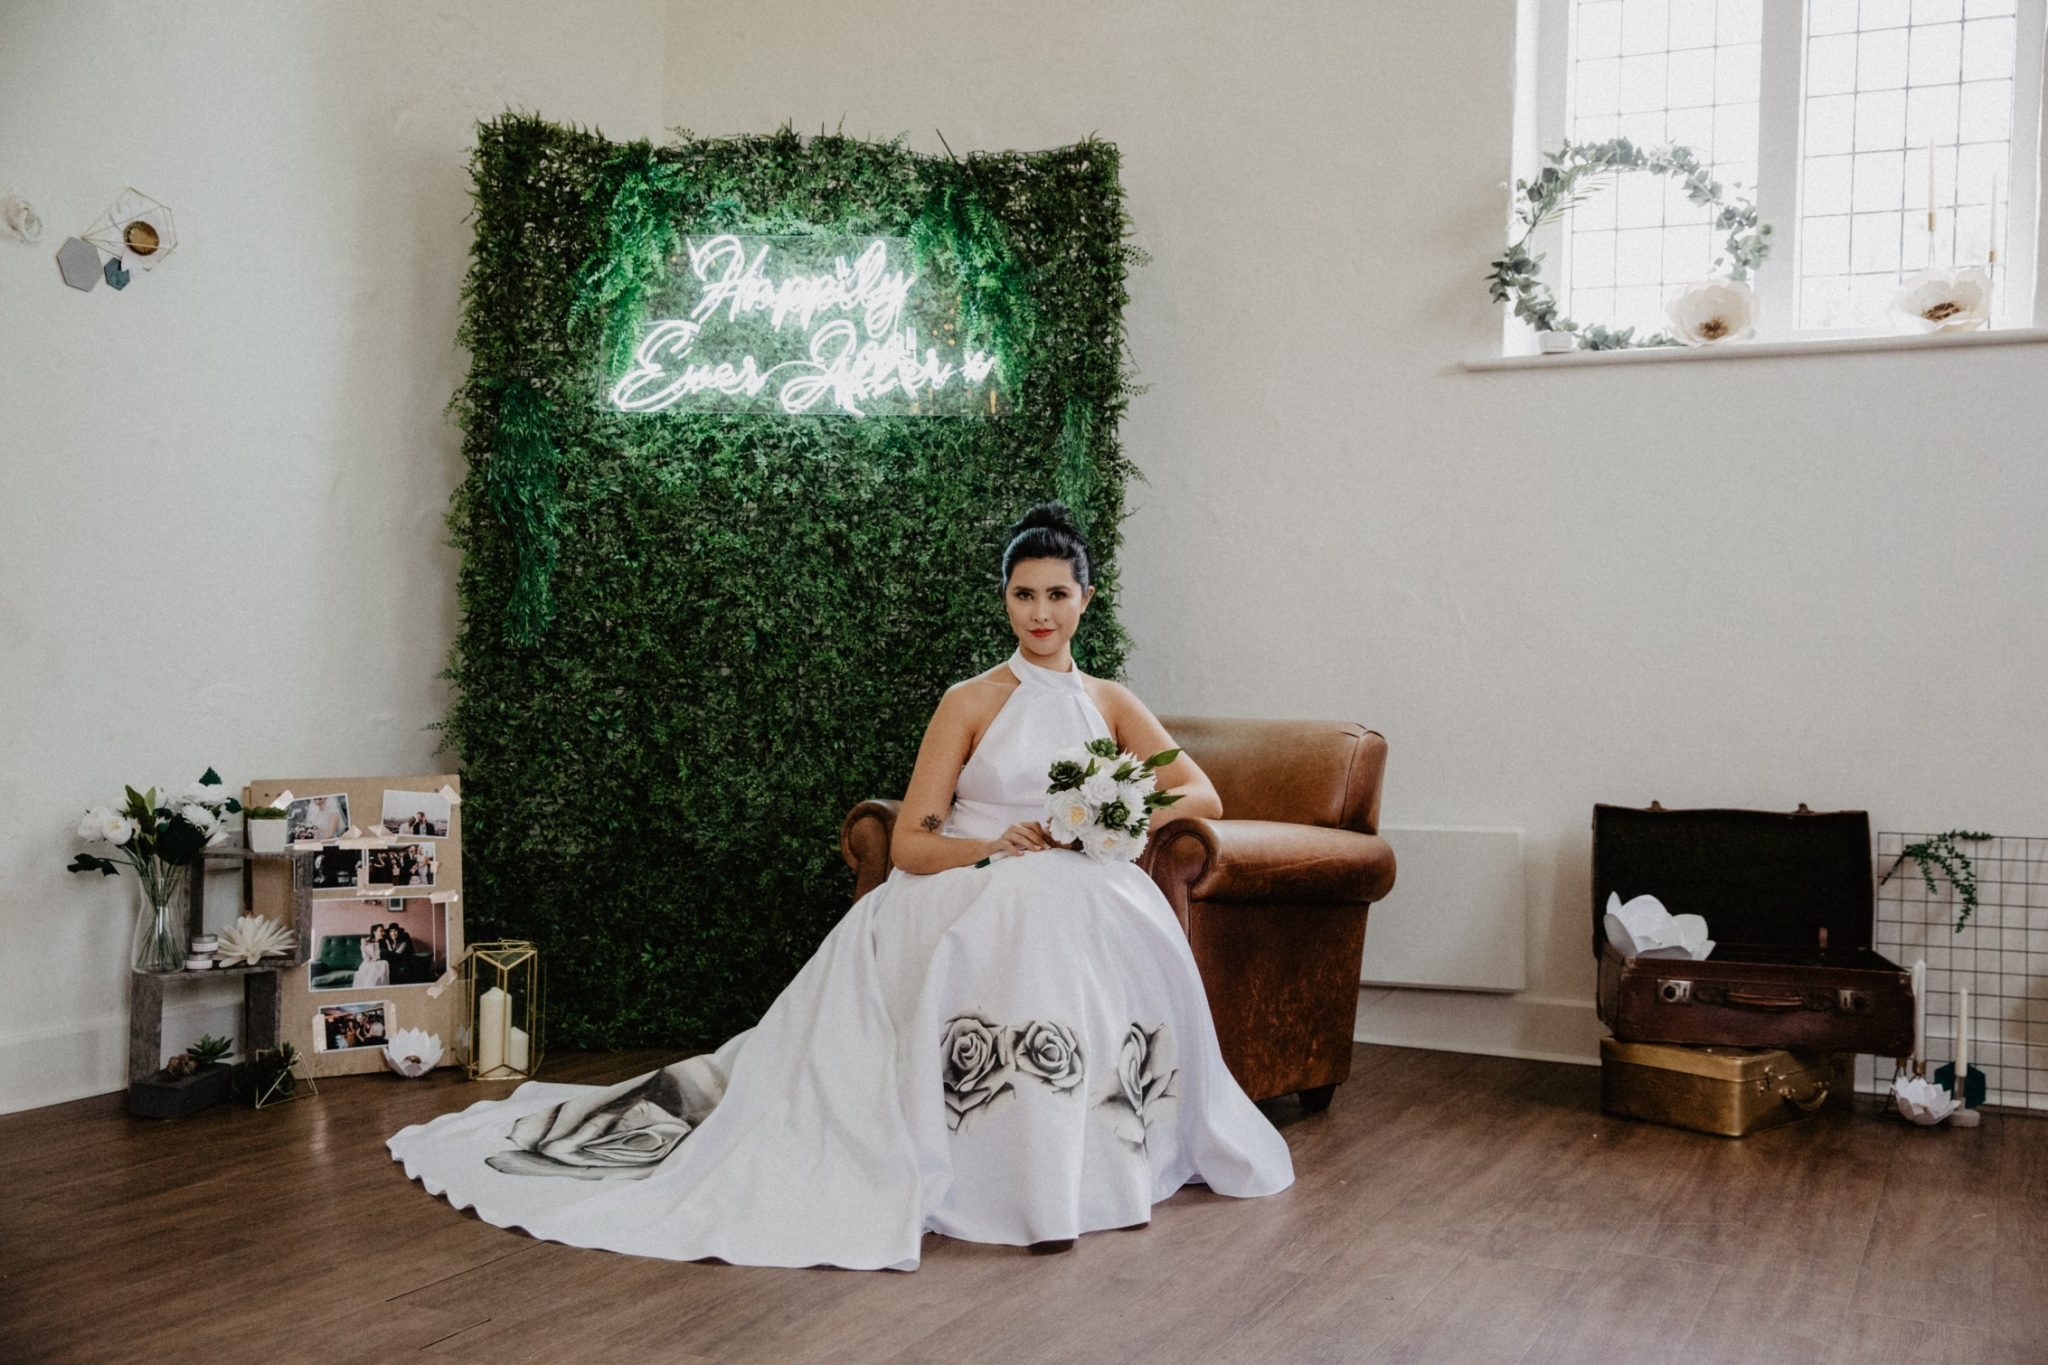 hand painted wedding dress with black roses from aylin white designs - bespoke hand painted bridal gowns - alternative wedding dress ideas 2